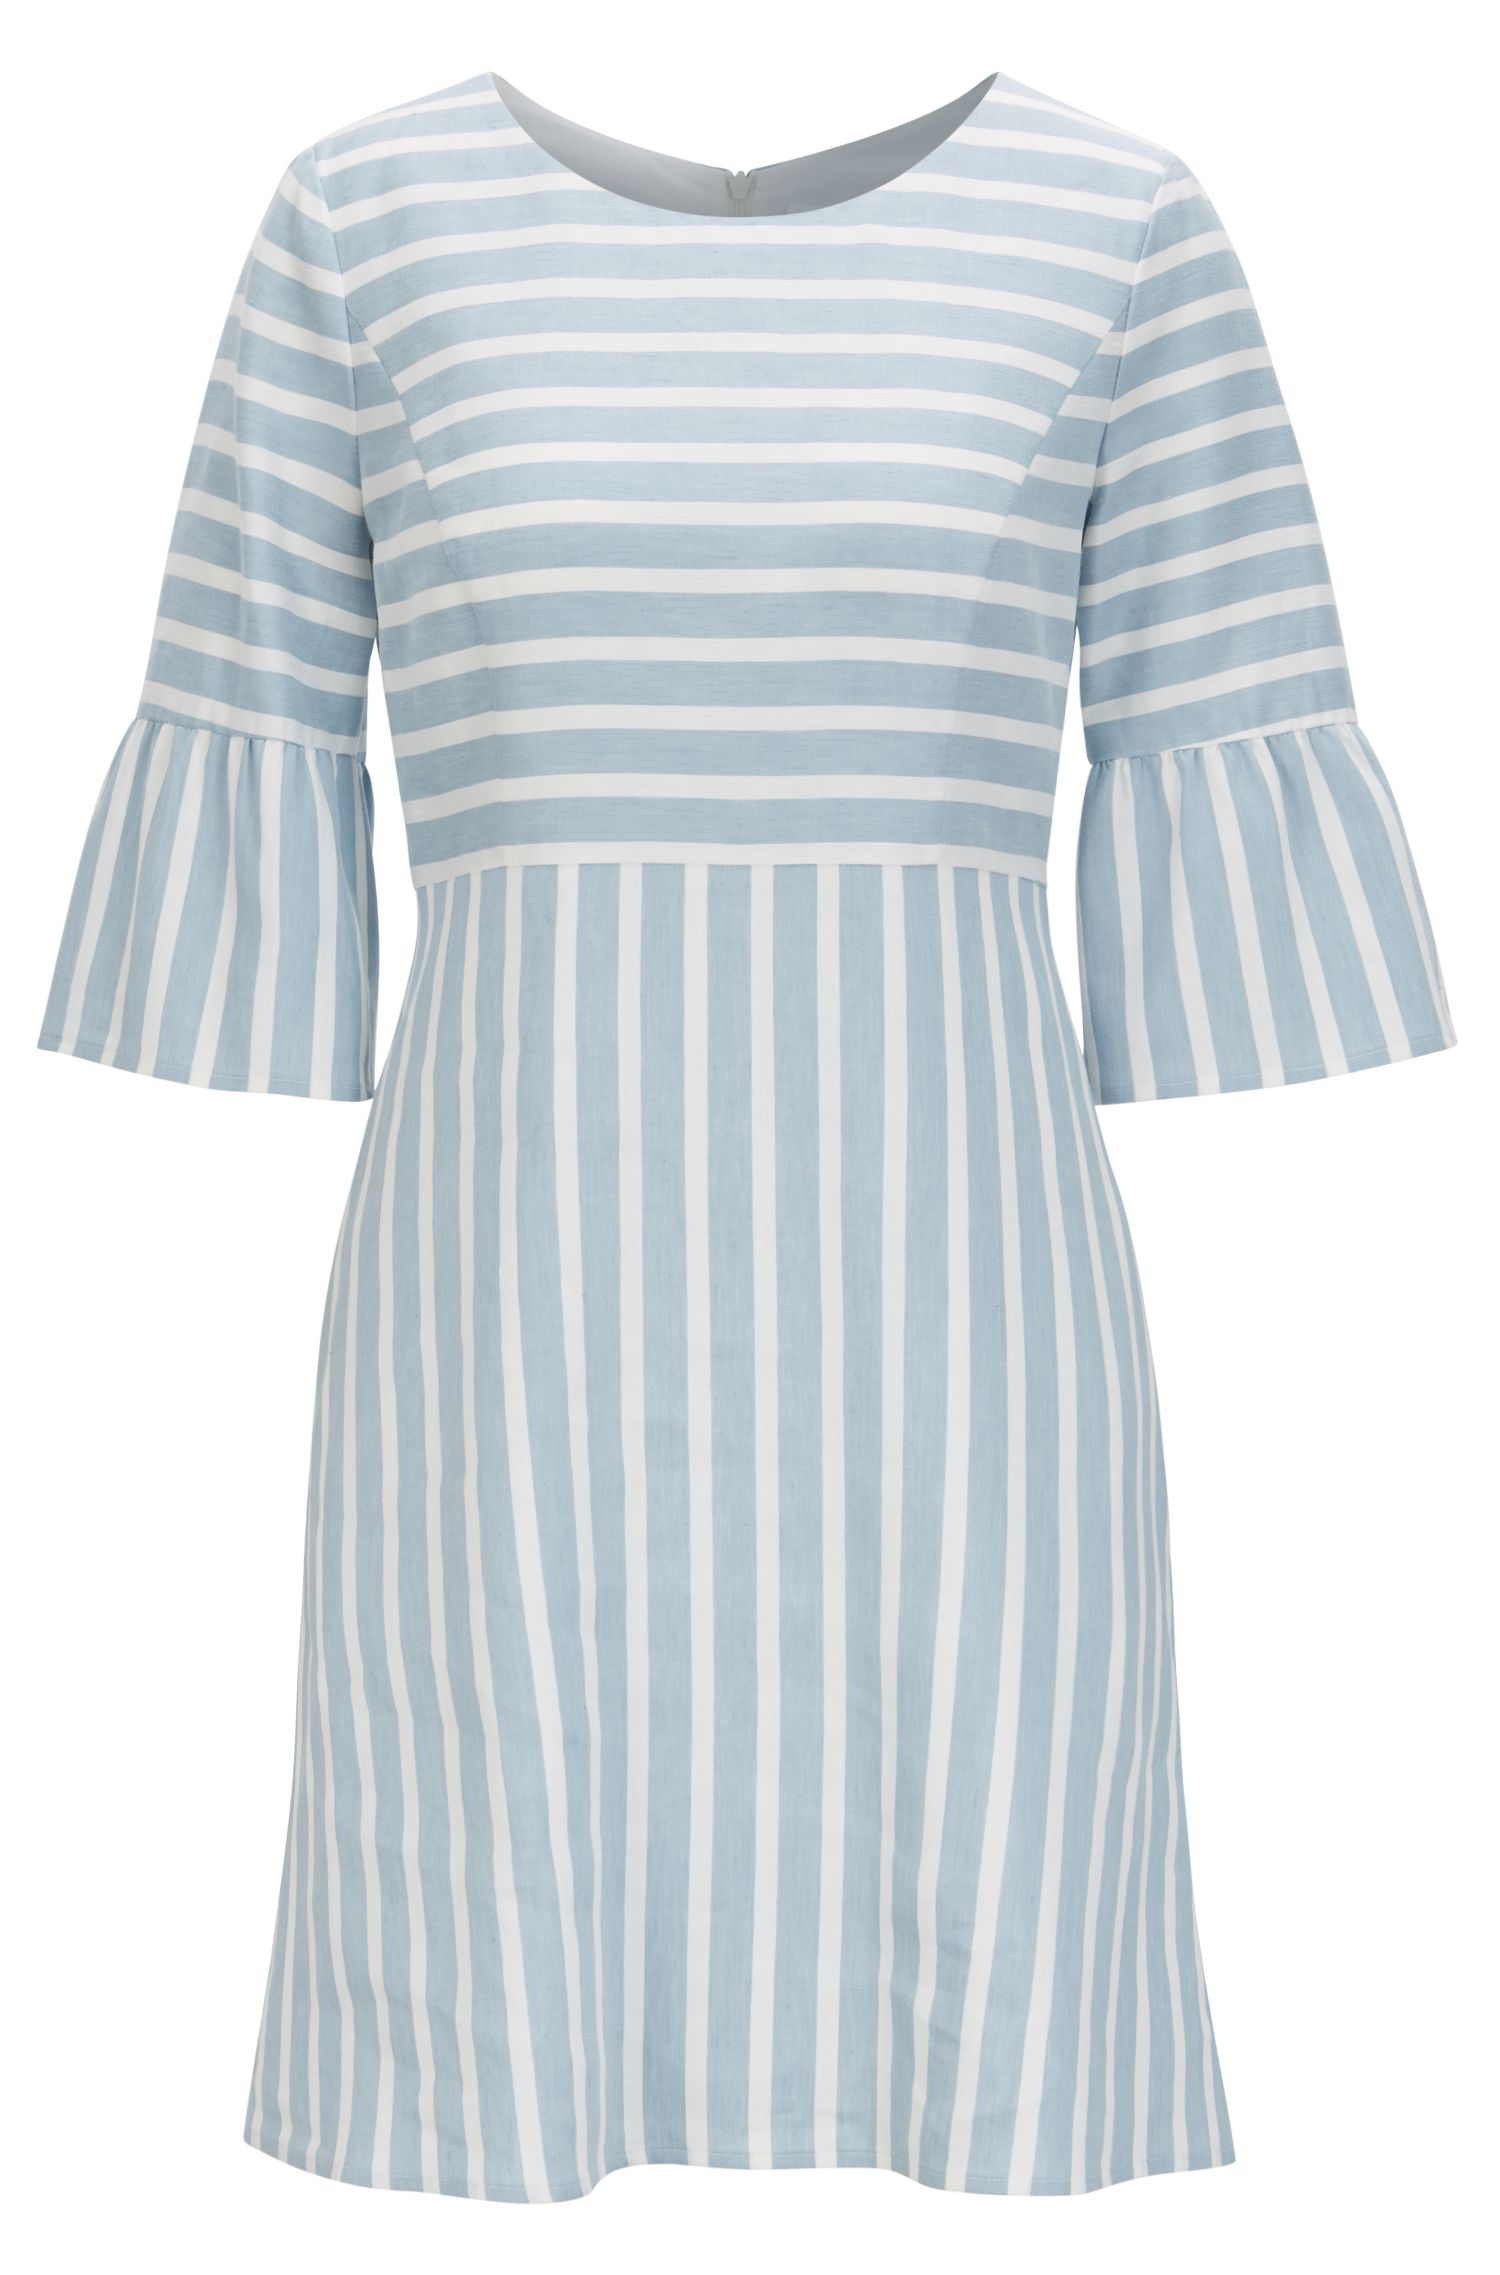 Waisted dress in a striped linen blend